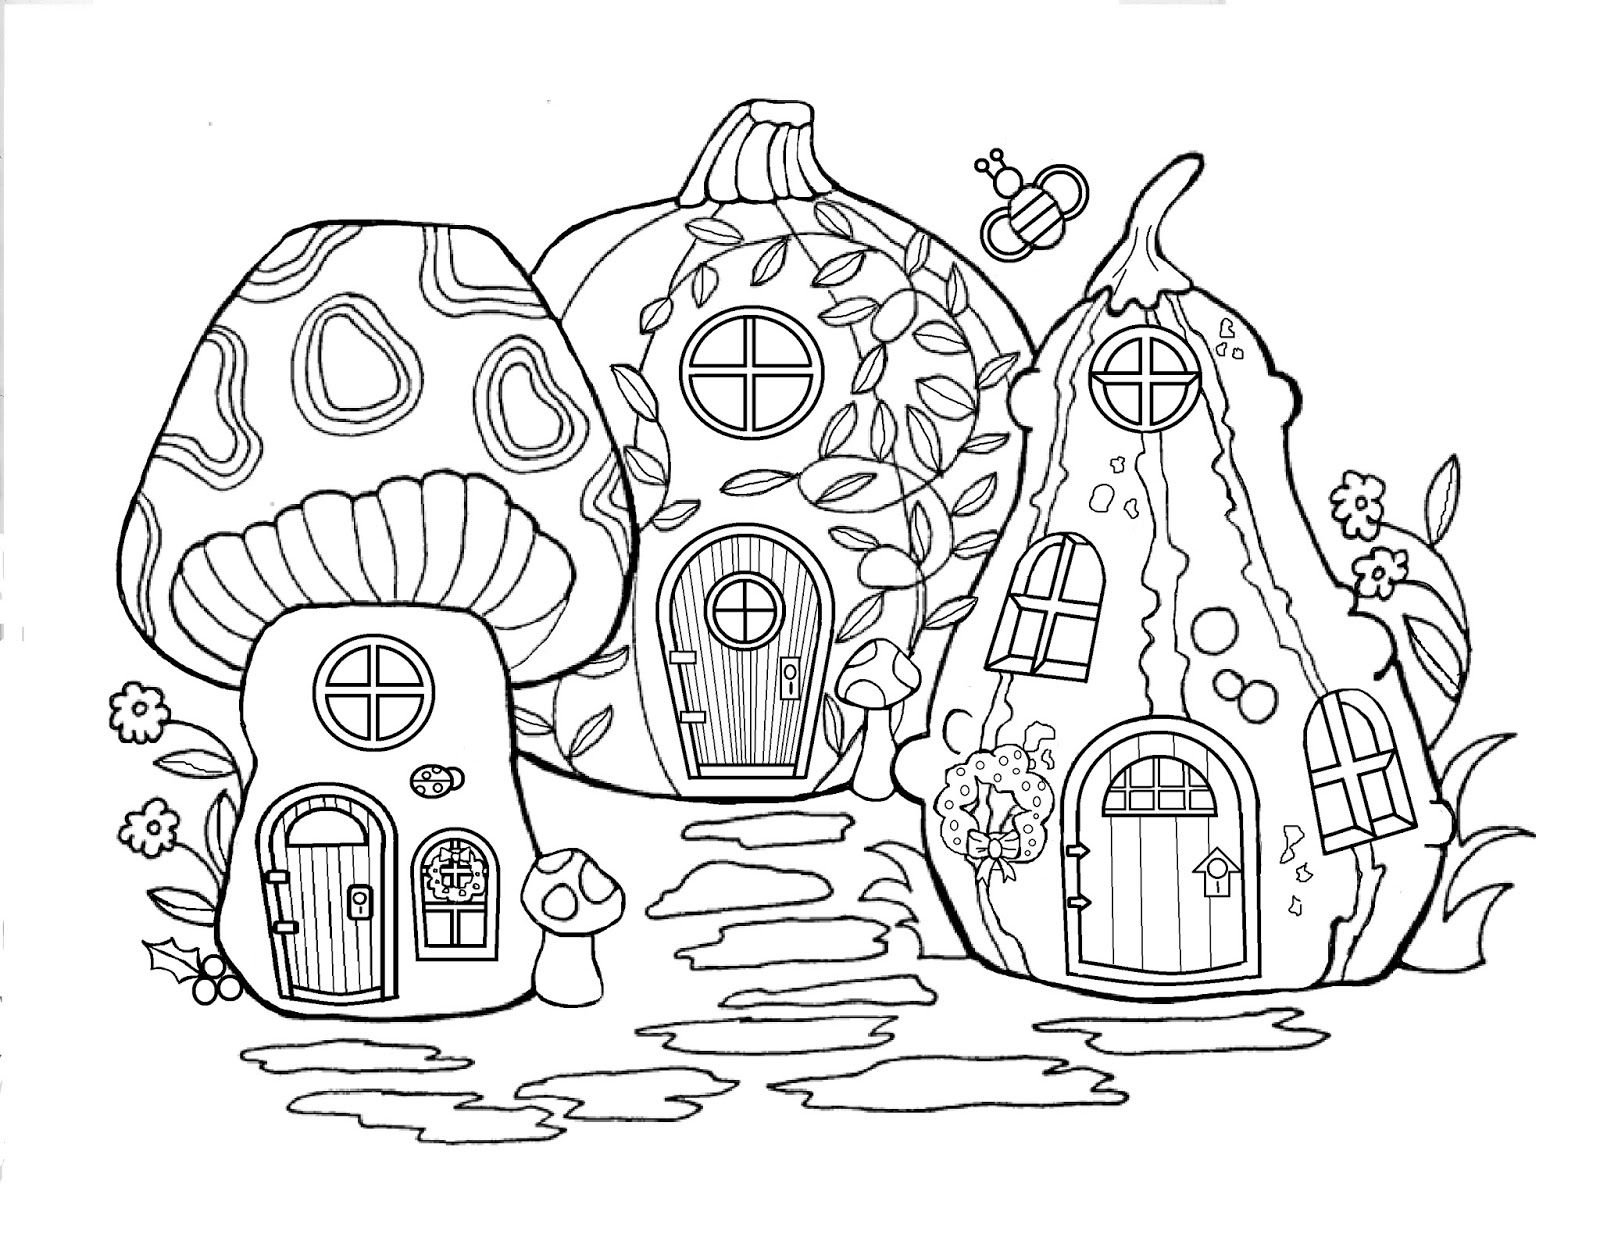 Printable fairy houses to color let it shine fairy merry christmas day13